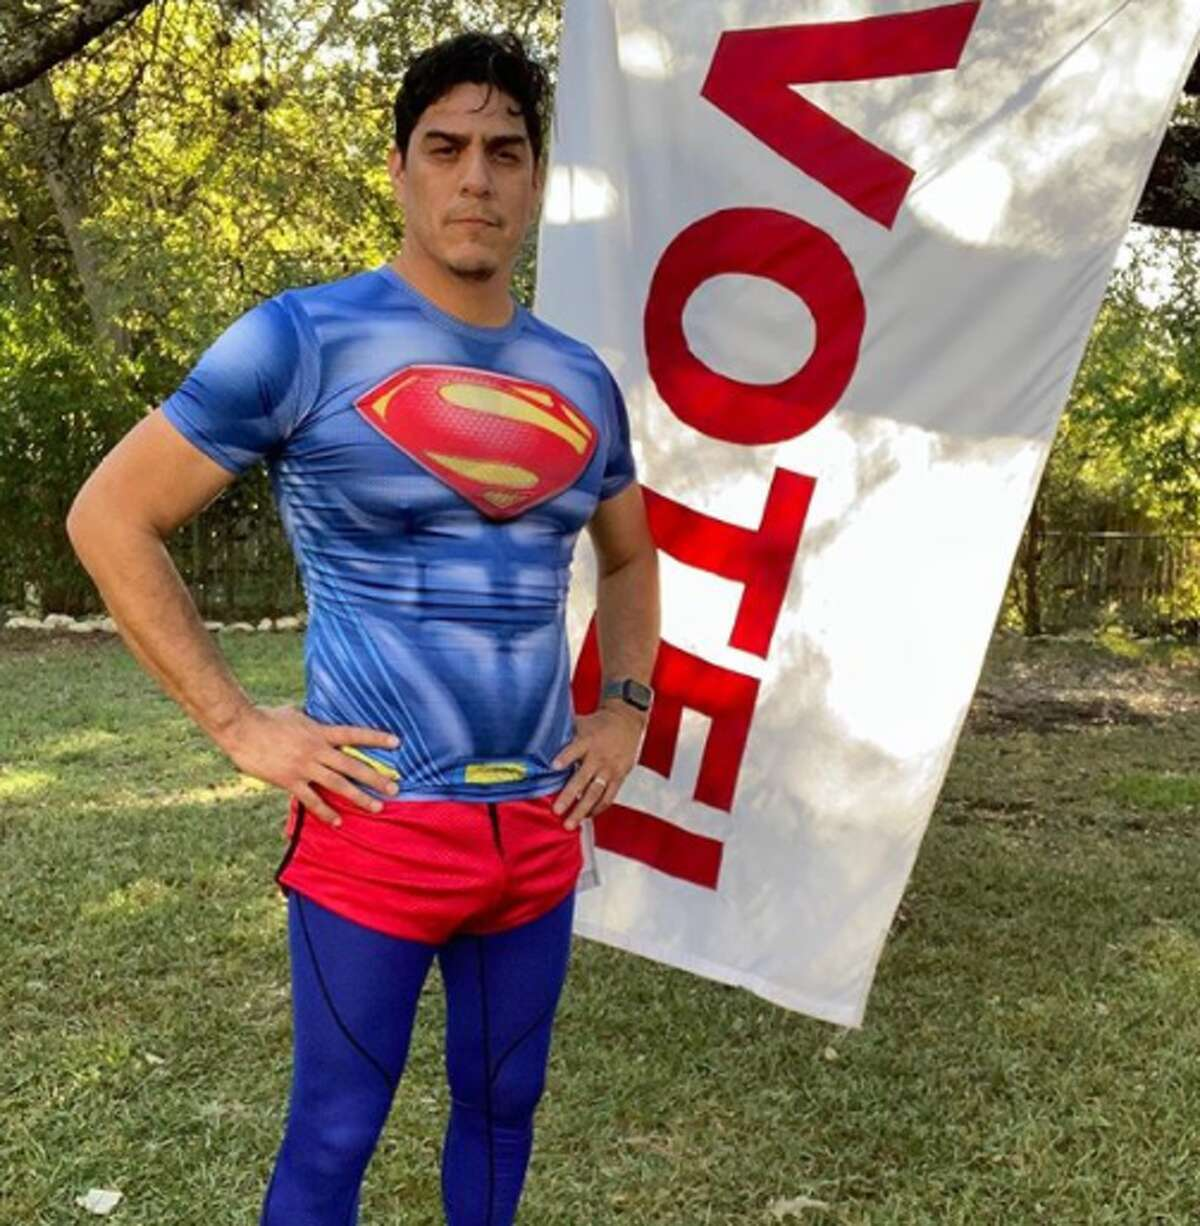 Since early voting started Oct. 13, David Alcantar, 42, has been running about 3 miles a day in local neighborhoods and at election sites across the city for his ongoing